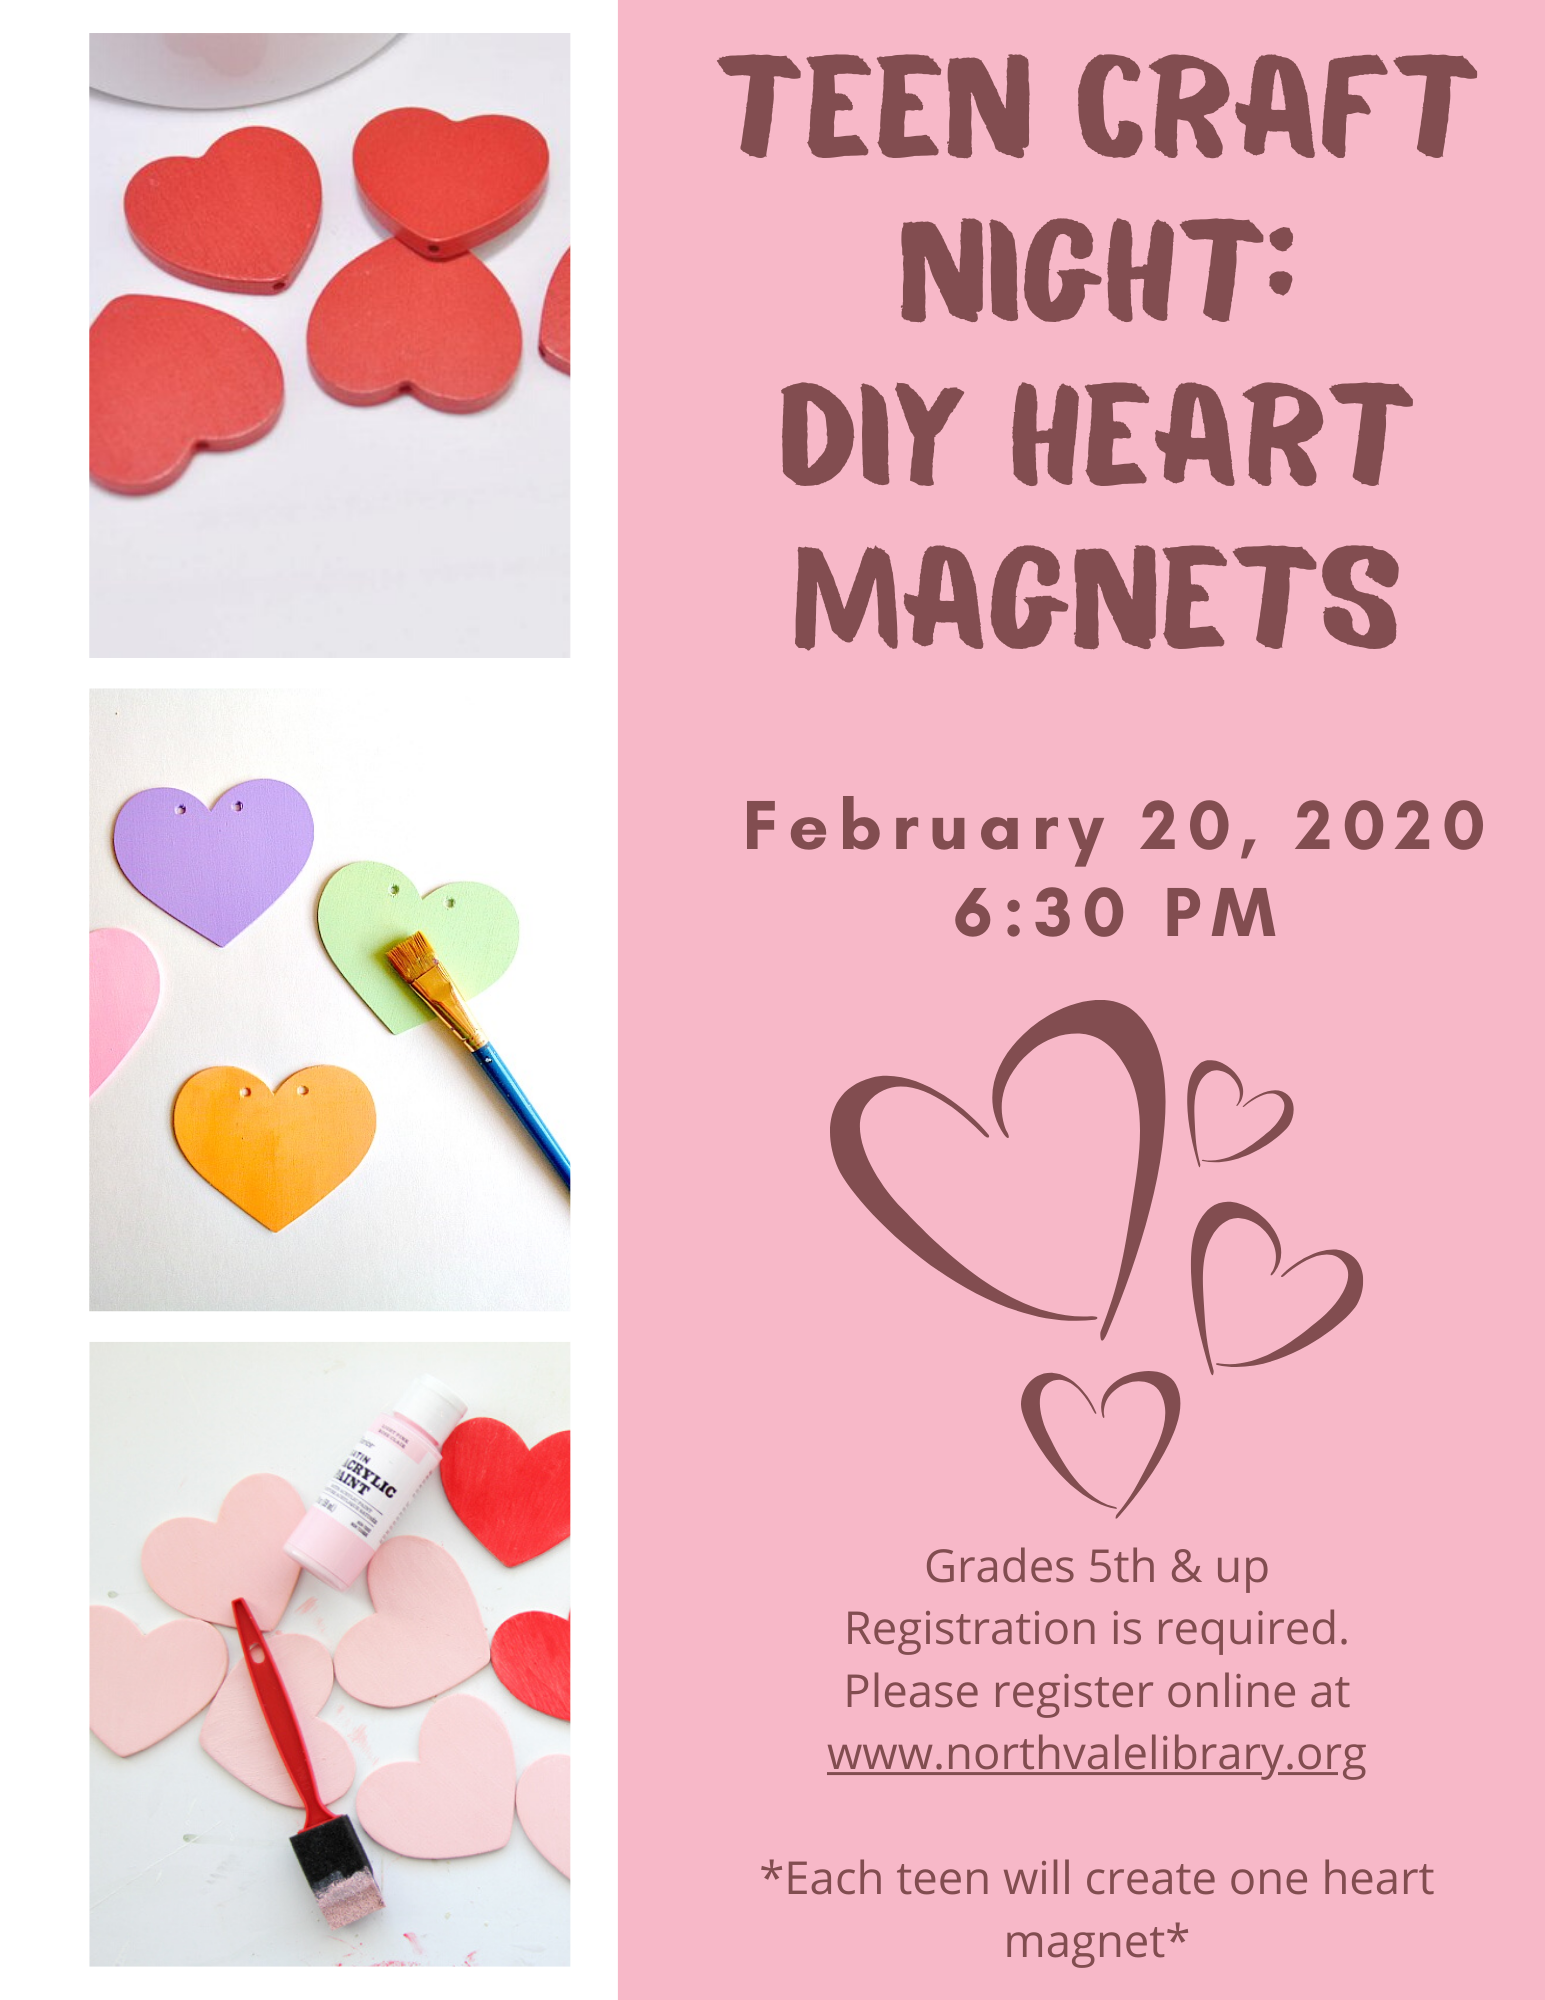 Teen Craft Night: DIY Heart Magnets